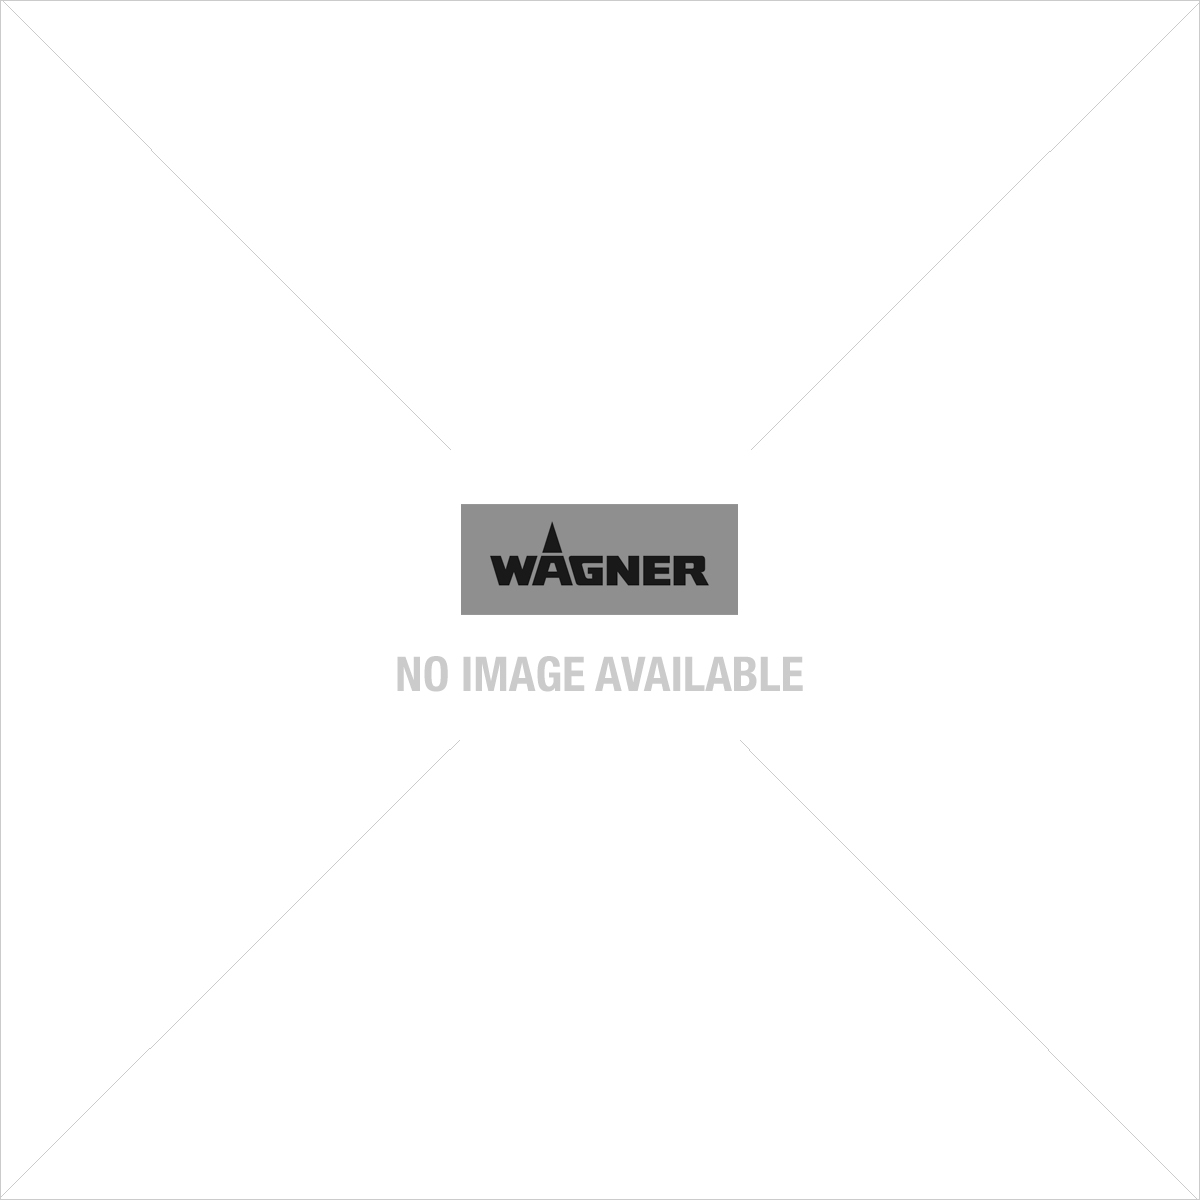 Wagner Project Pro 117 Airless paint sprayer